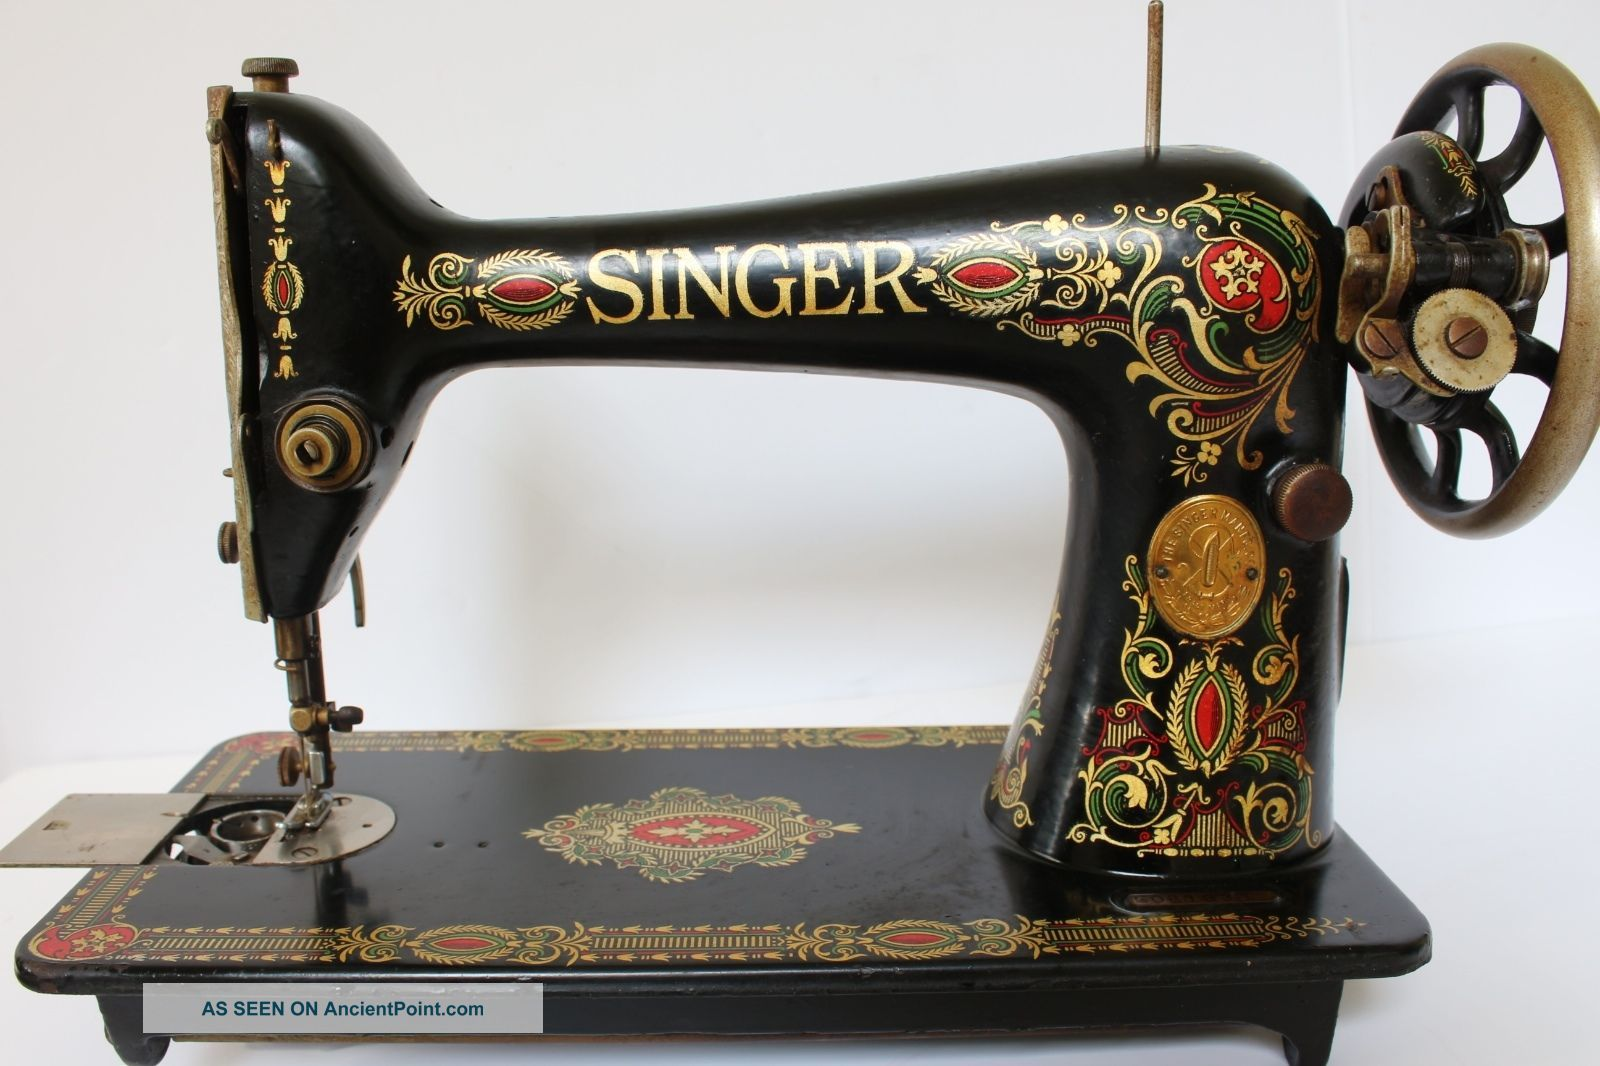 Vtg Antique 1924 Red Eye Singer Treadle Sewing Machine Model 66 G0813331 Sewing Machines photo